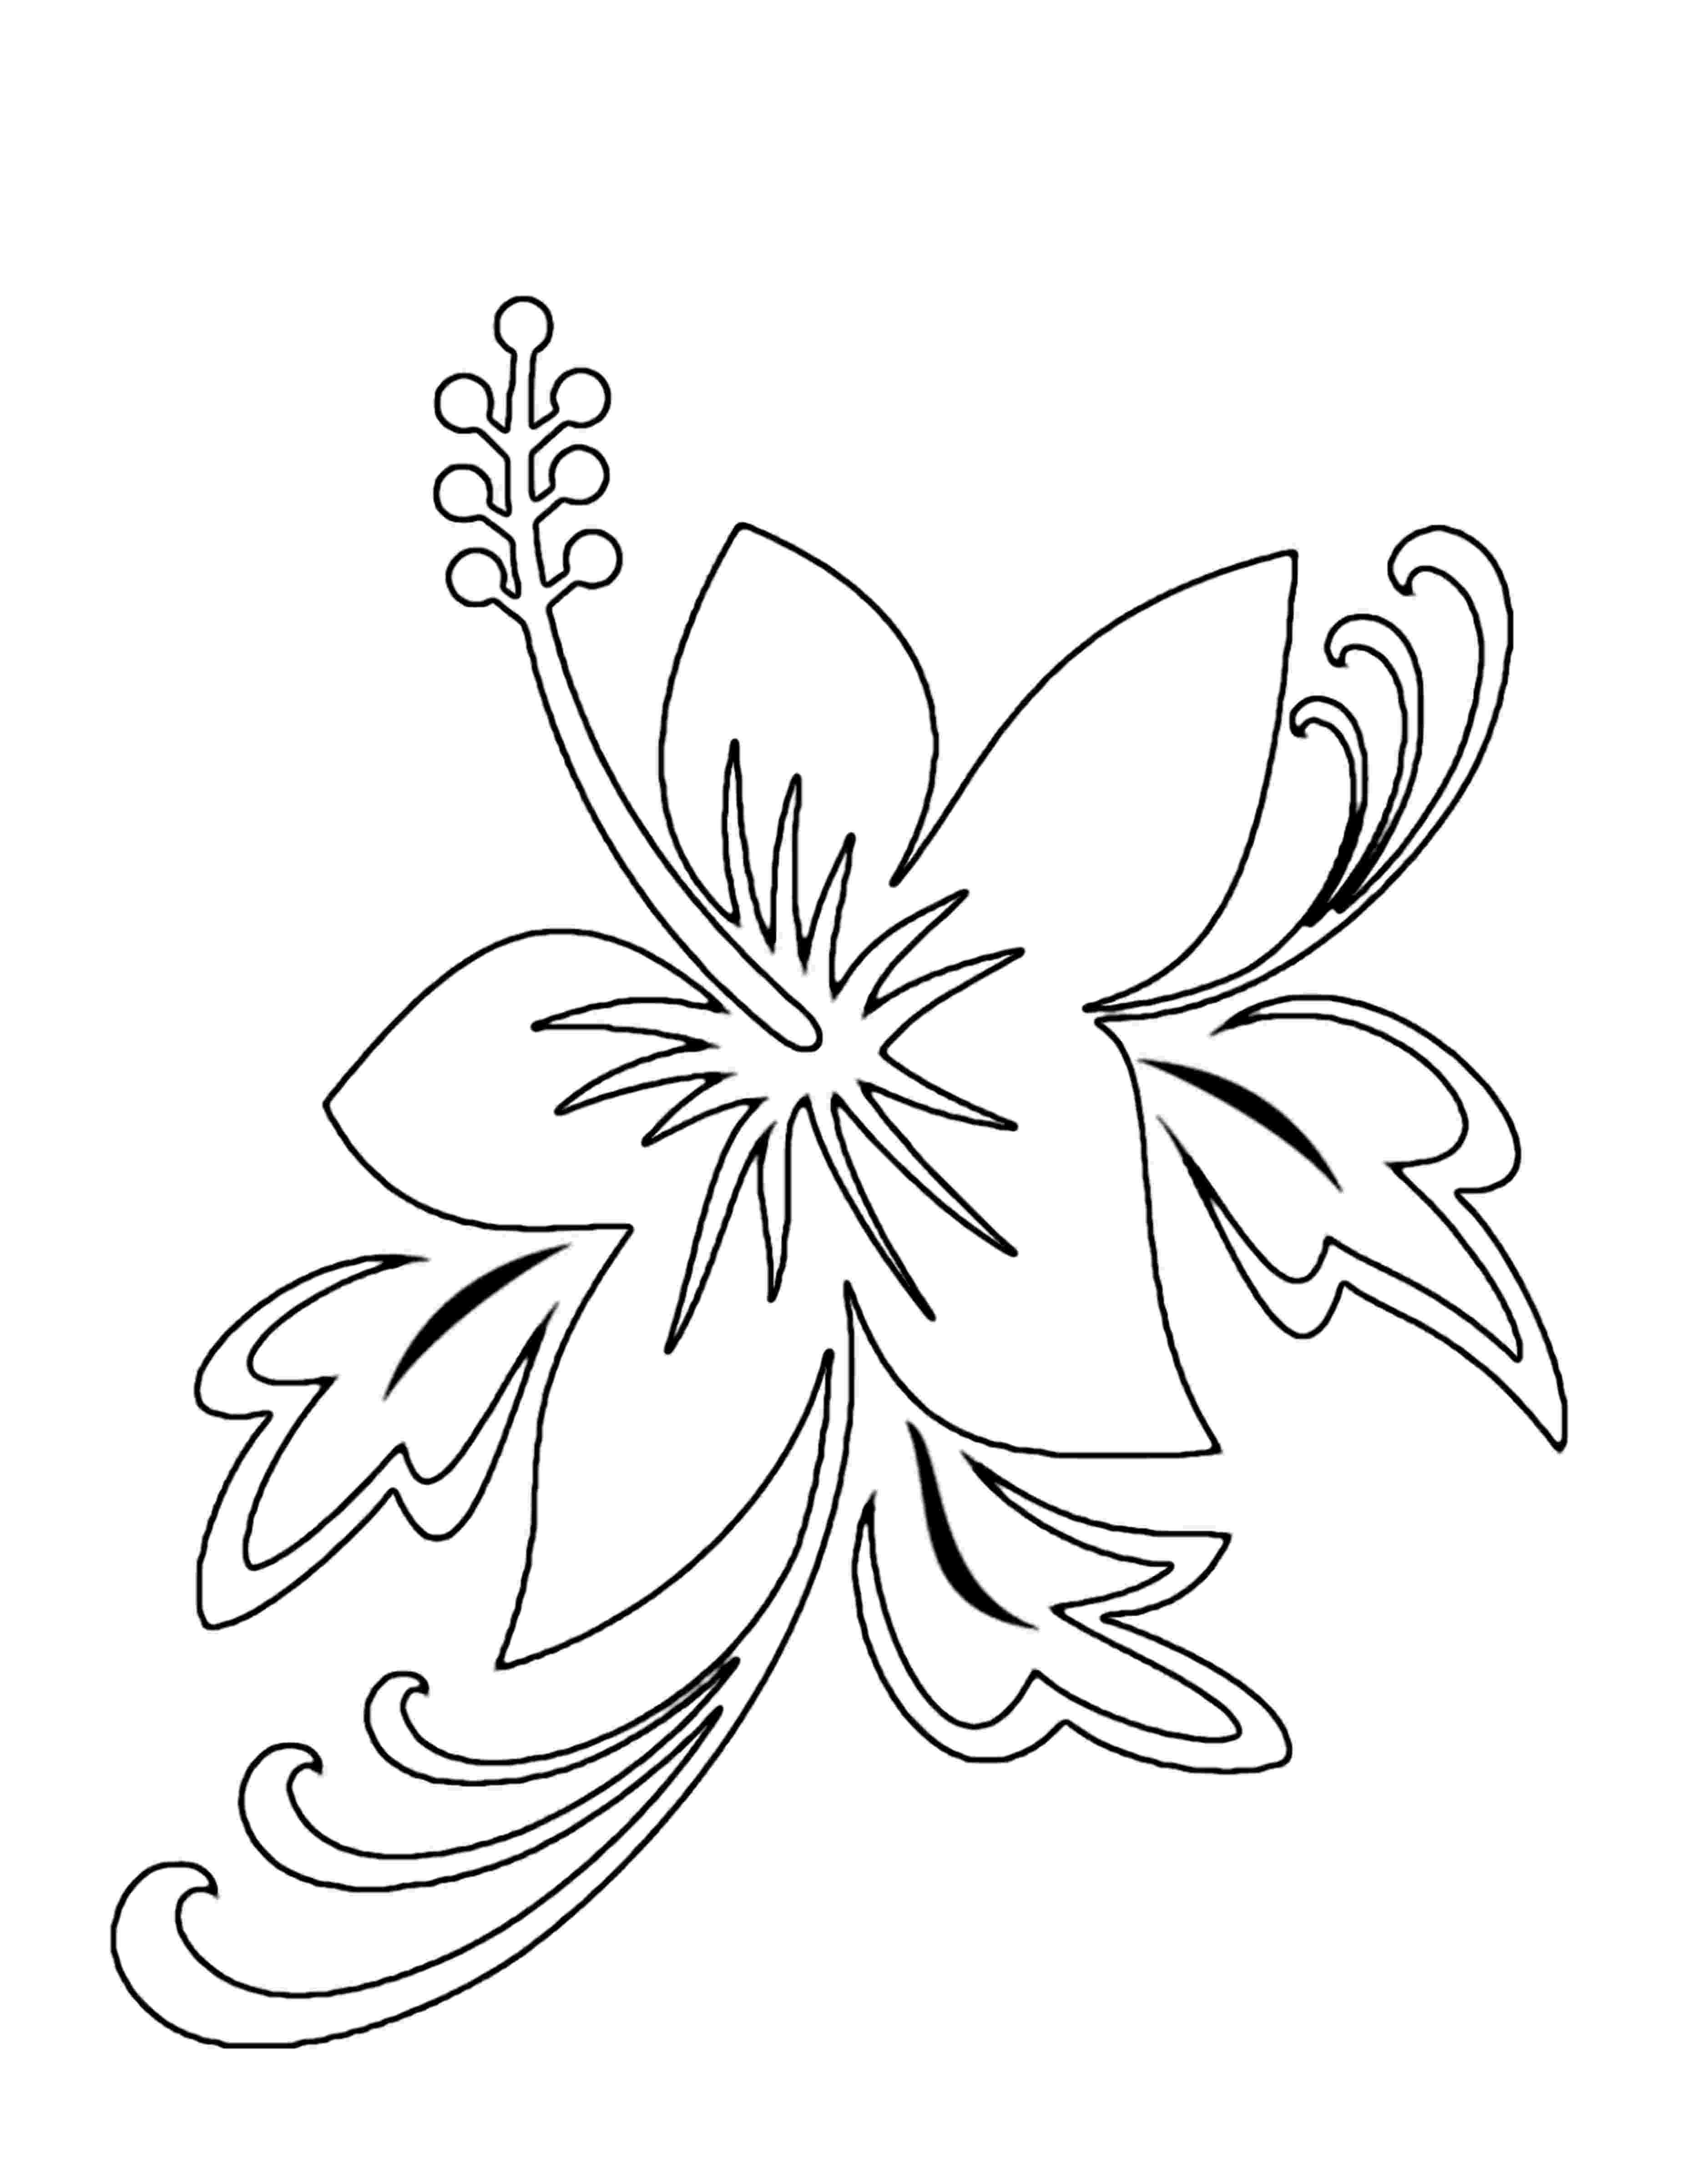 pictures of flowers to color free printables free vase flower coloring pages printables pictures to free flowers color of